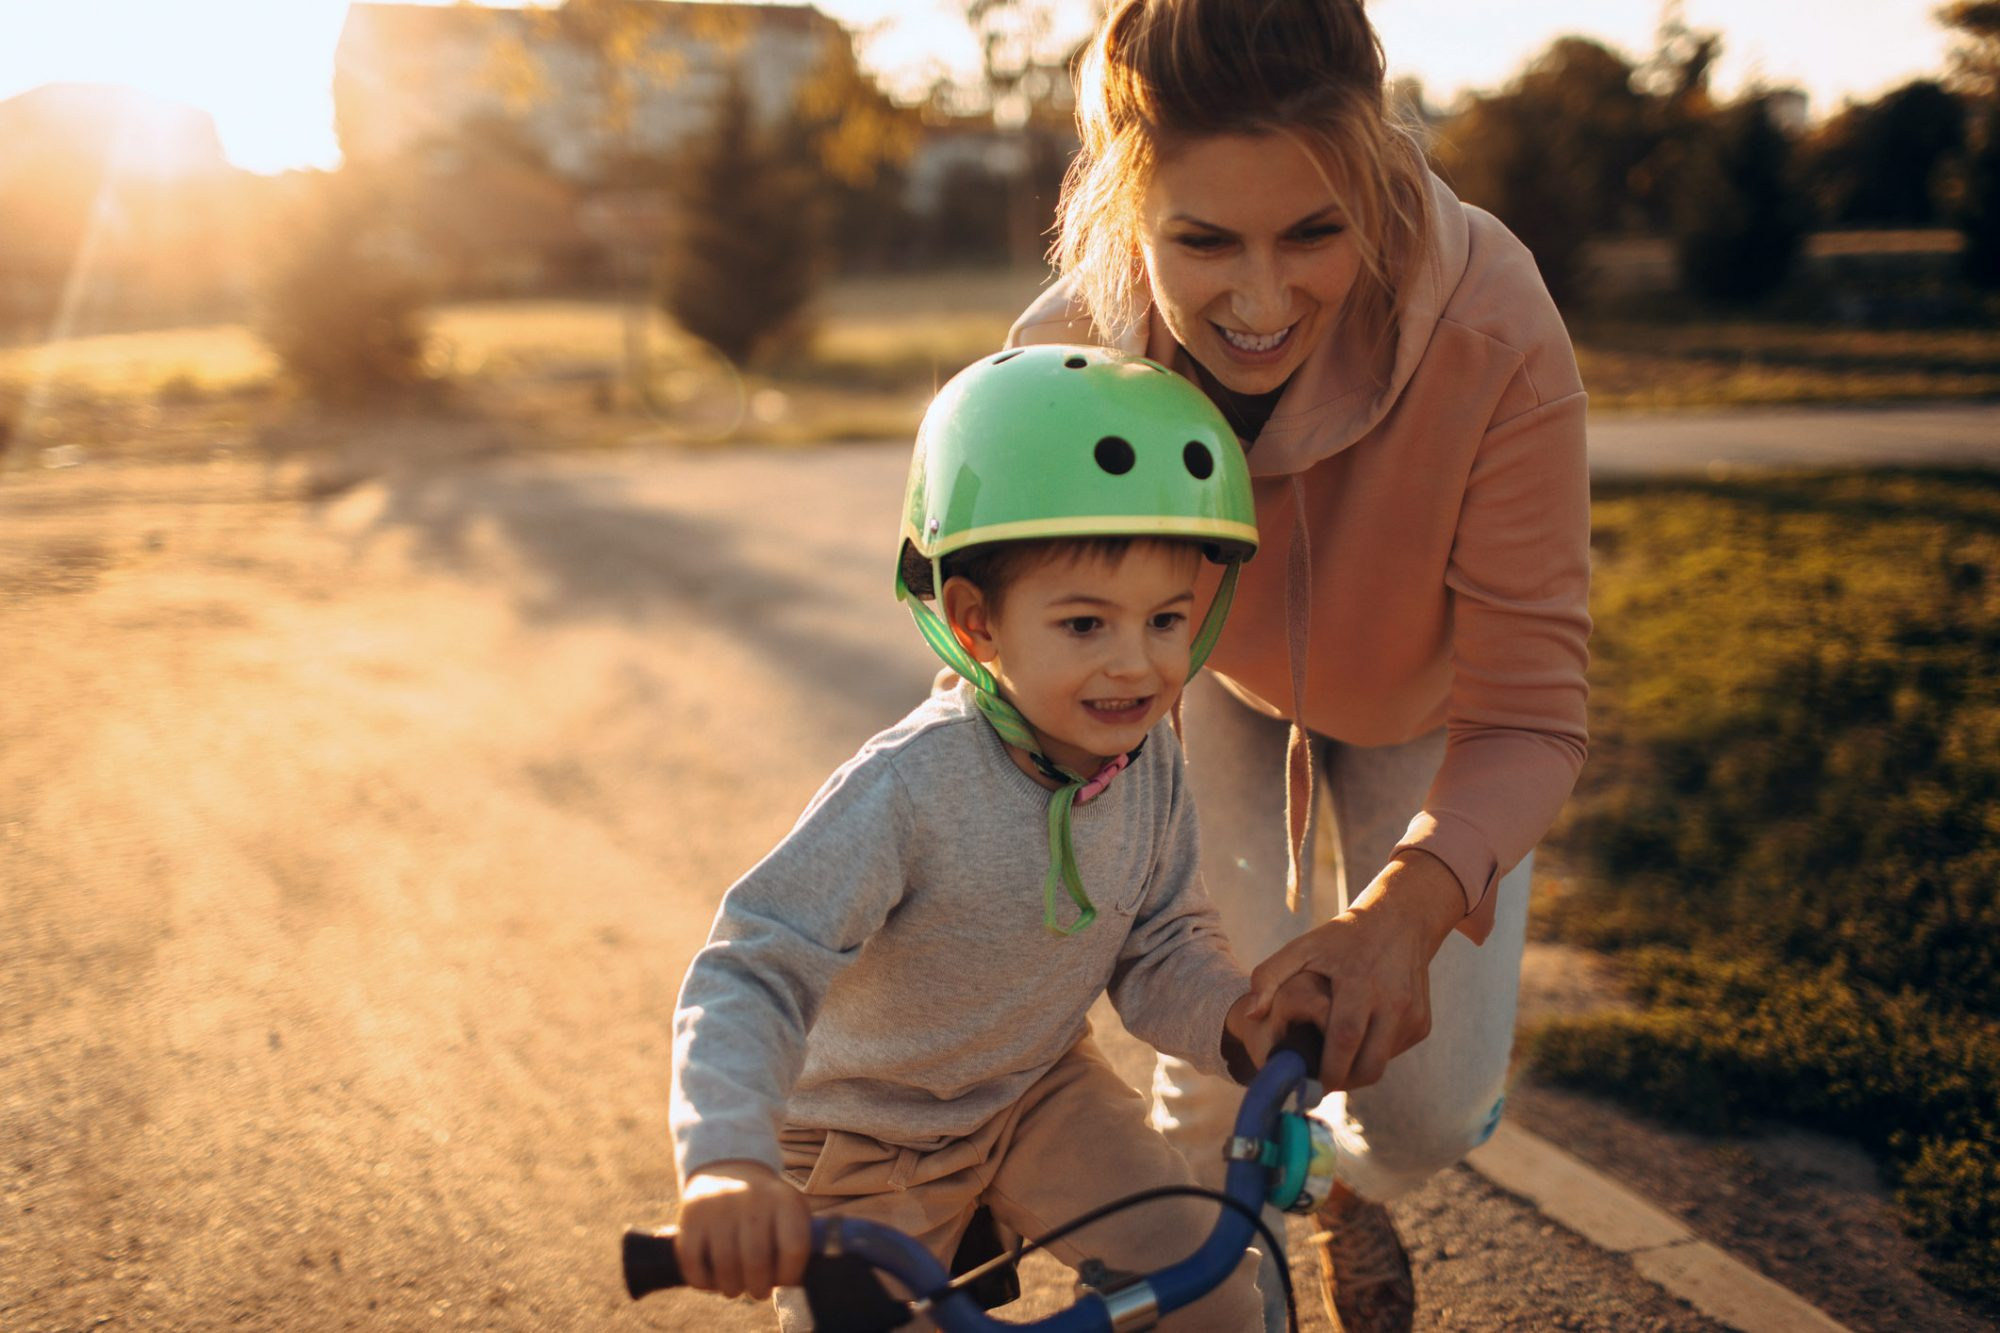 An image of a mom teaching her son to ride a bike.